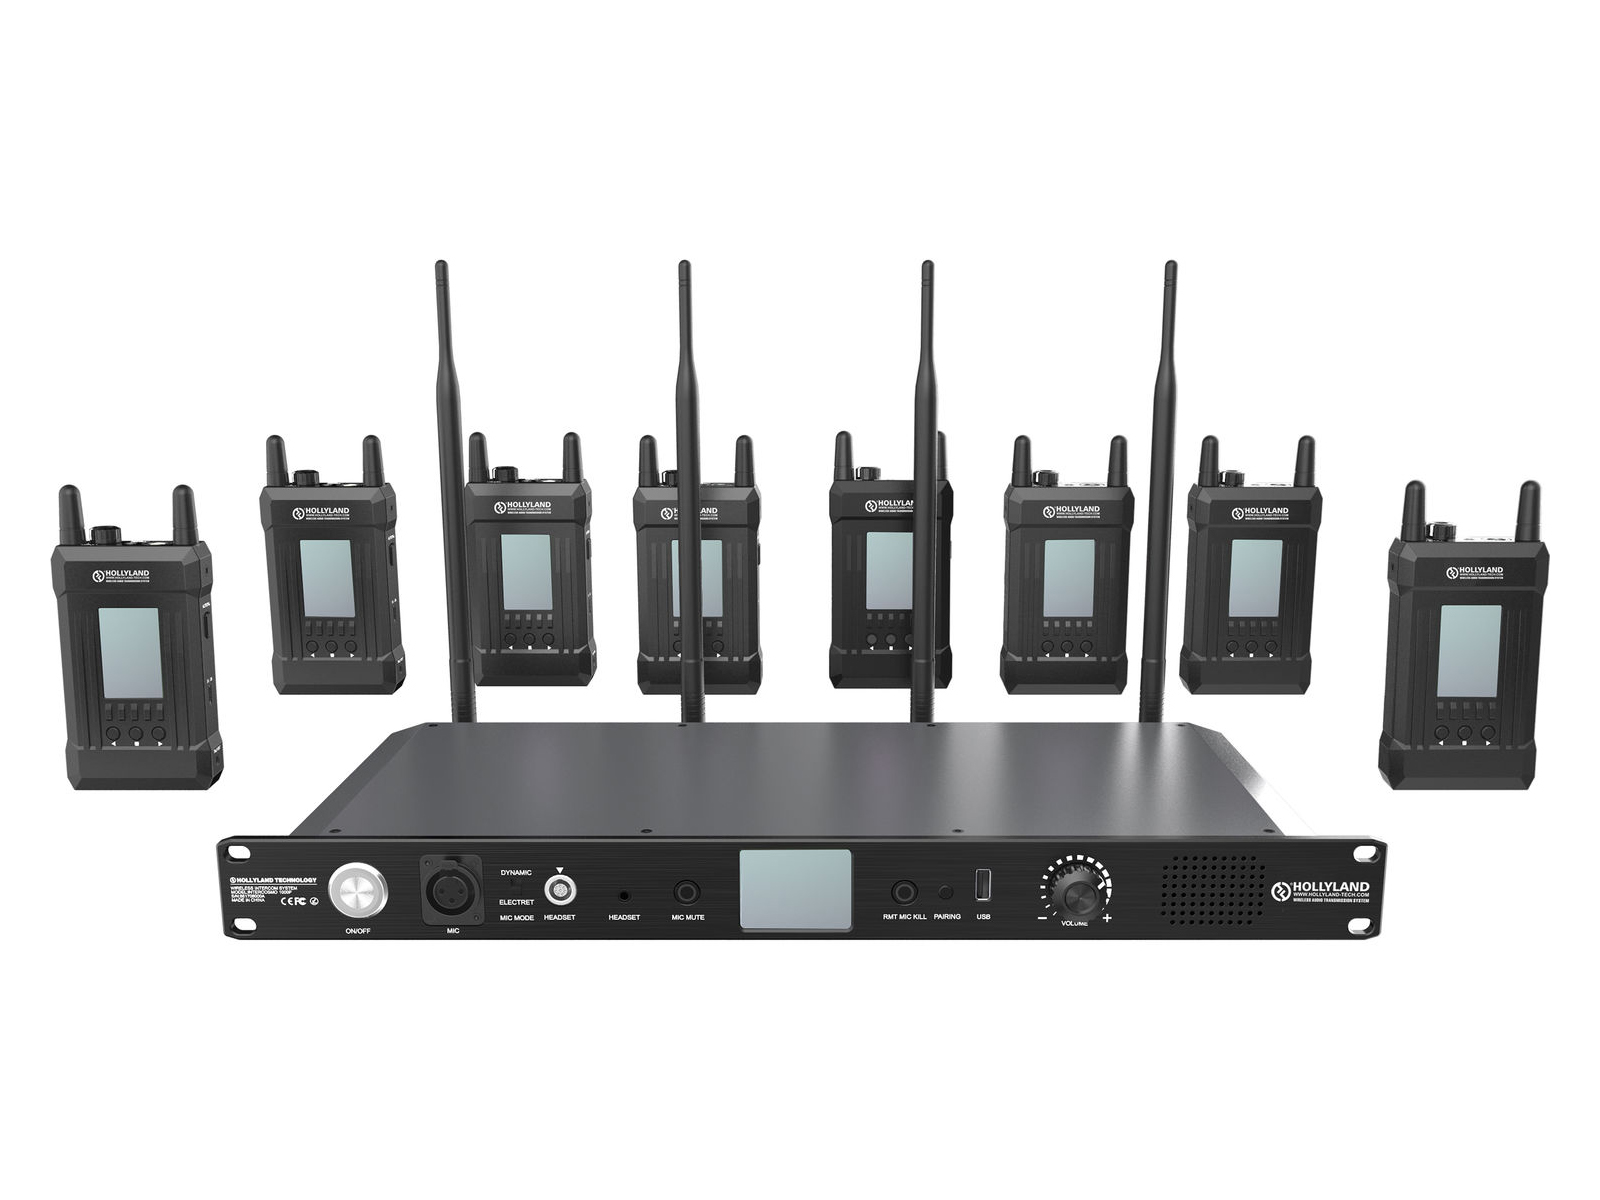 HL-Syscom-1000T-8B Full Duplex Intercom System with 8 Beltpacks - 1000ft by Hollyland